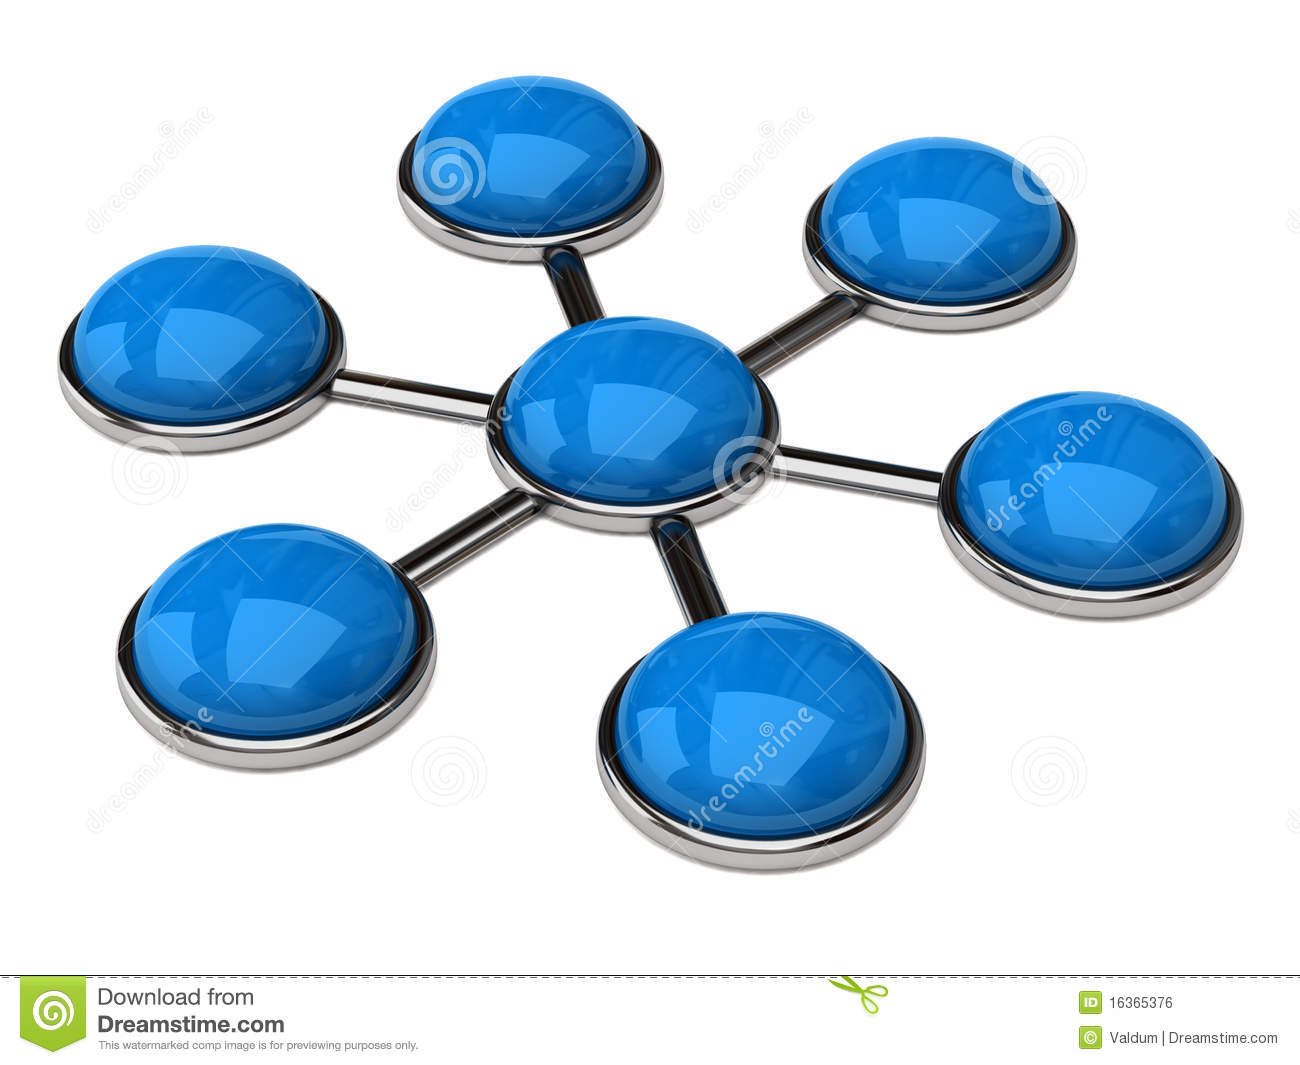 Network Icon Royalty Free Stock Image  Image: 16365376